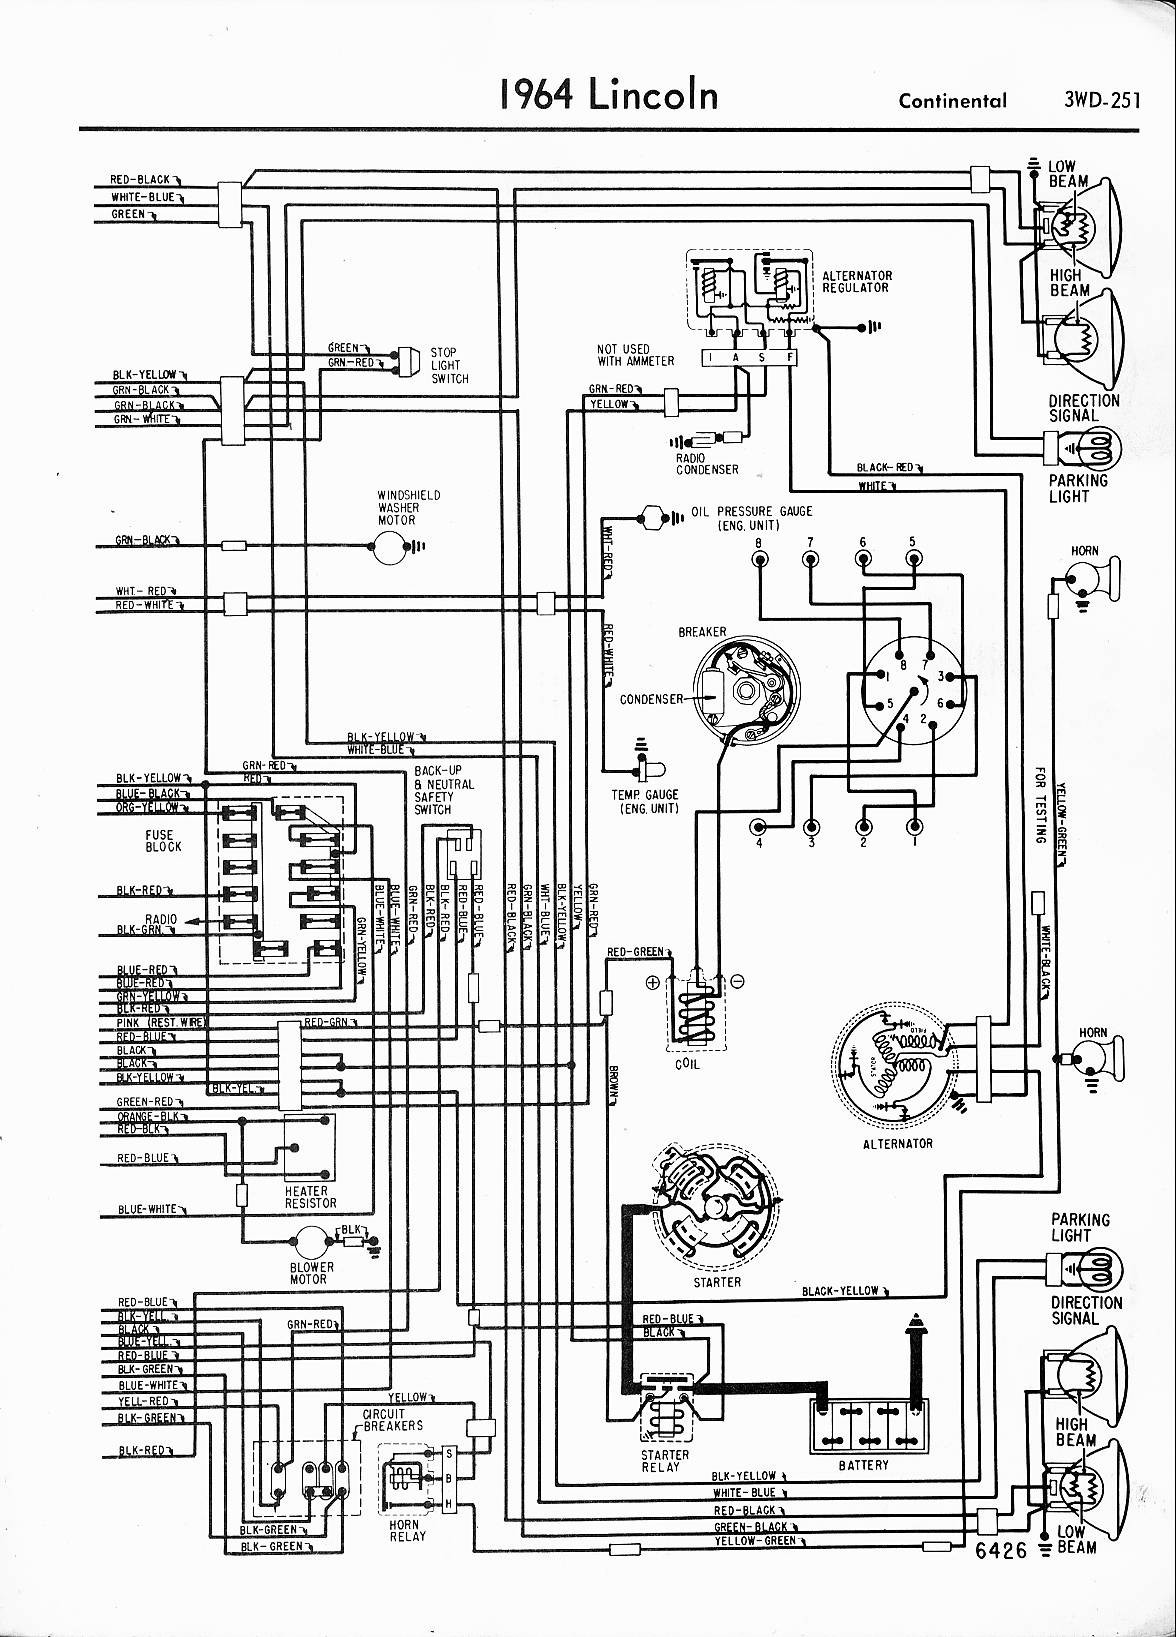 1948 Lincoln Wiring Diagram bull Wiring Diagram For Free